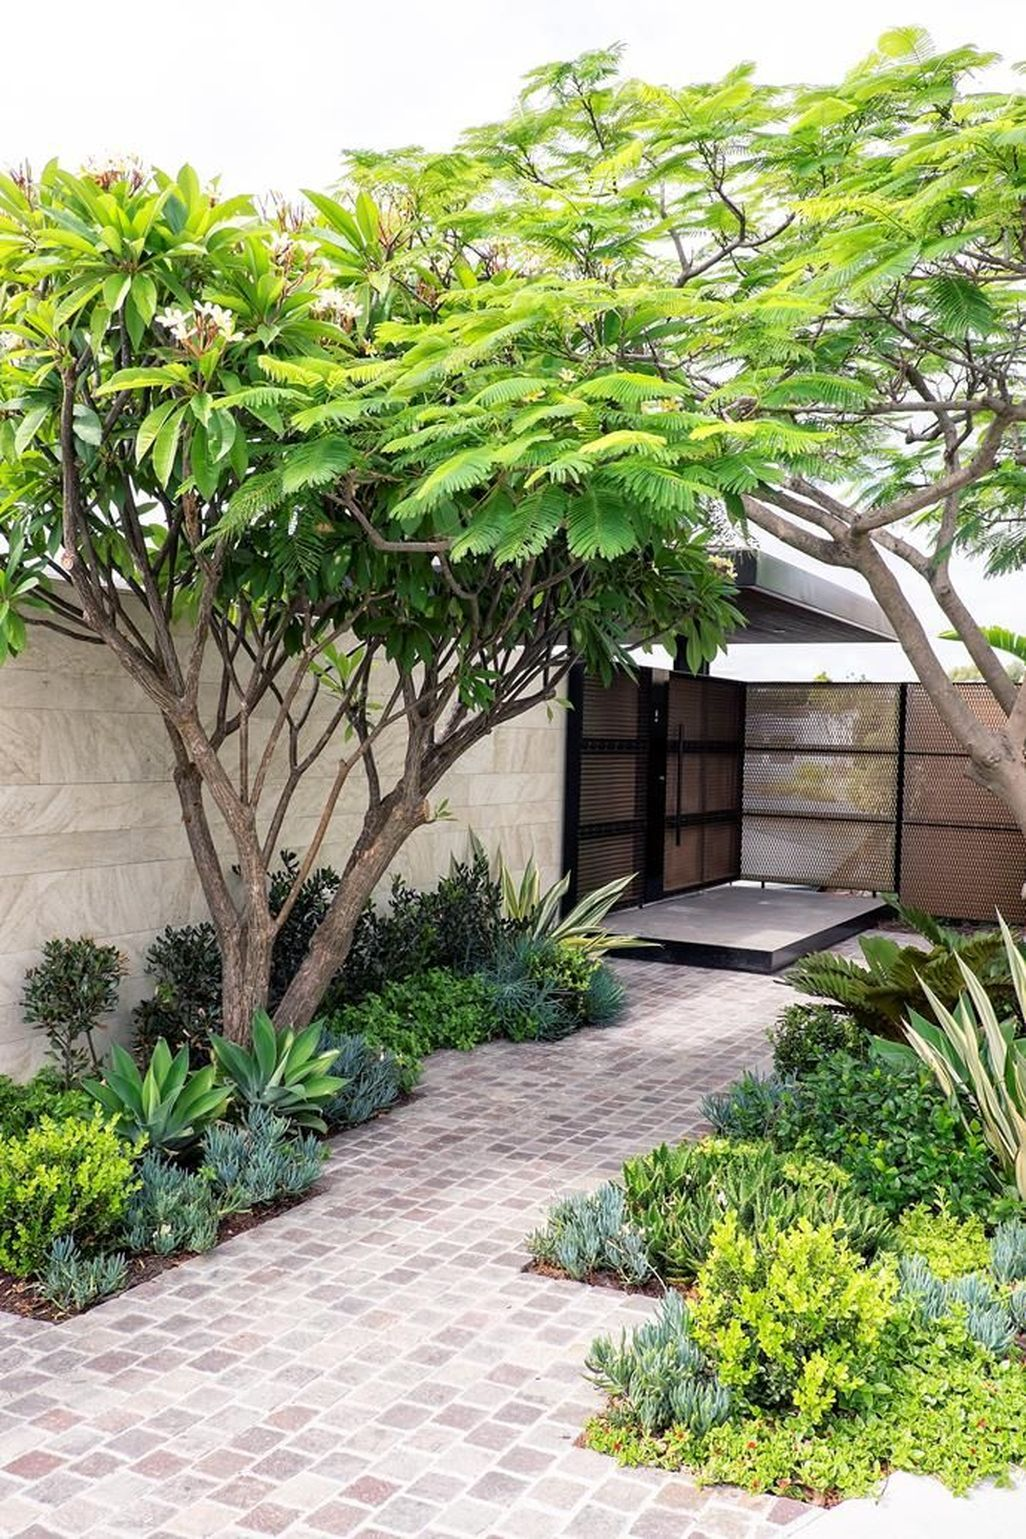 Amazing Landscaping Ideas For Small Budgets: 45 Amazing Small Garden Design Ideas